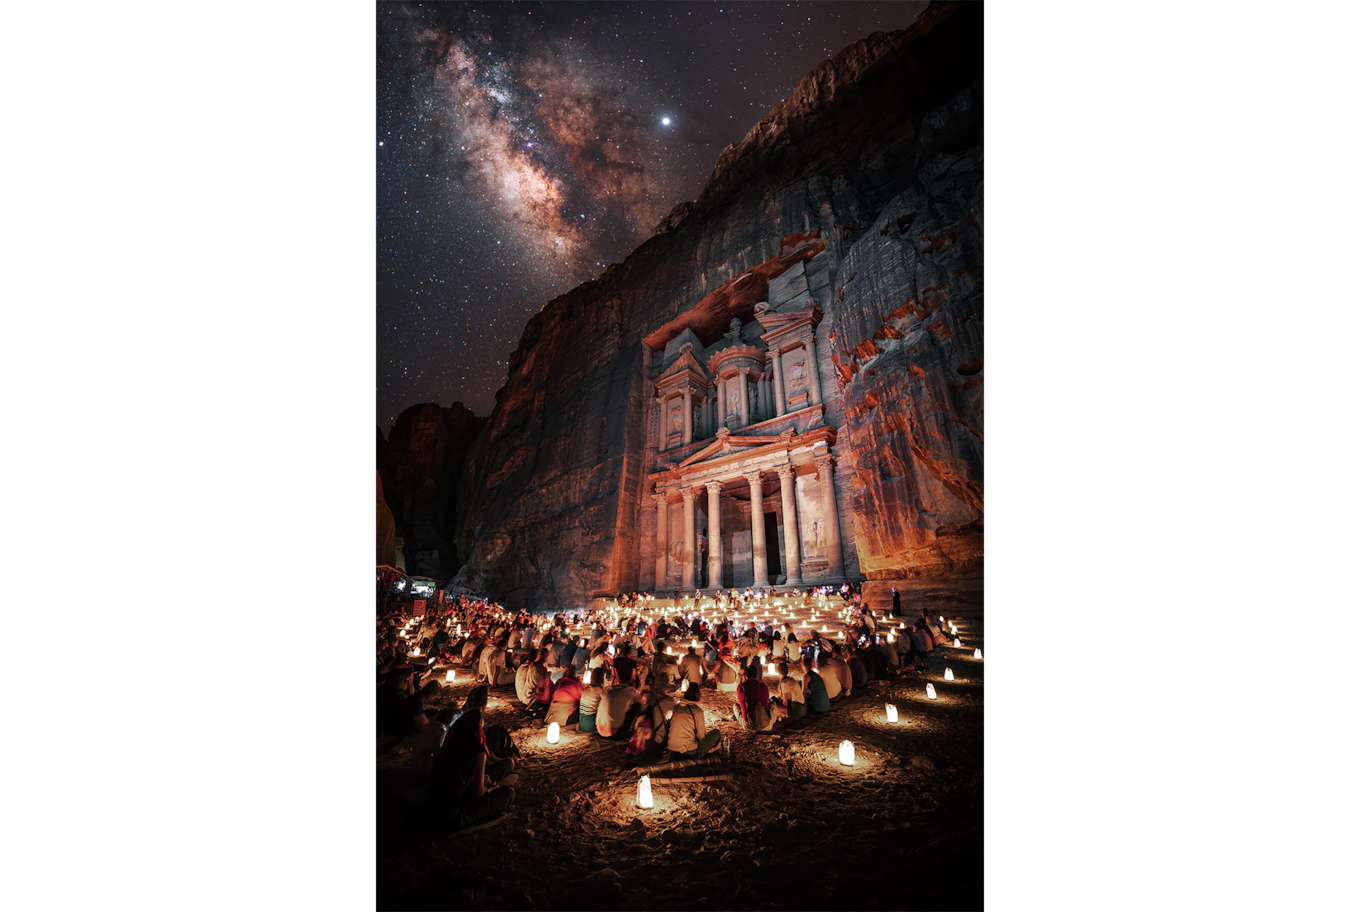 Stefan Liebermann sony alpha 7m3 night vigil at the treasury in Petra